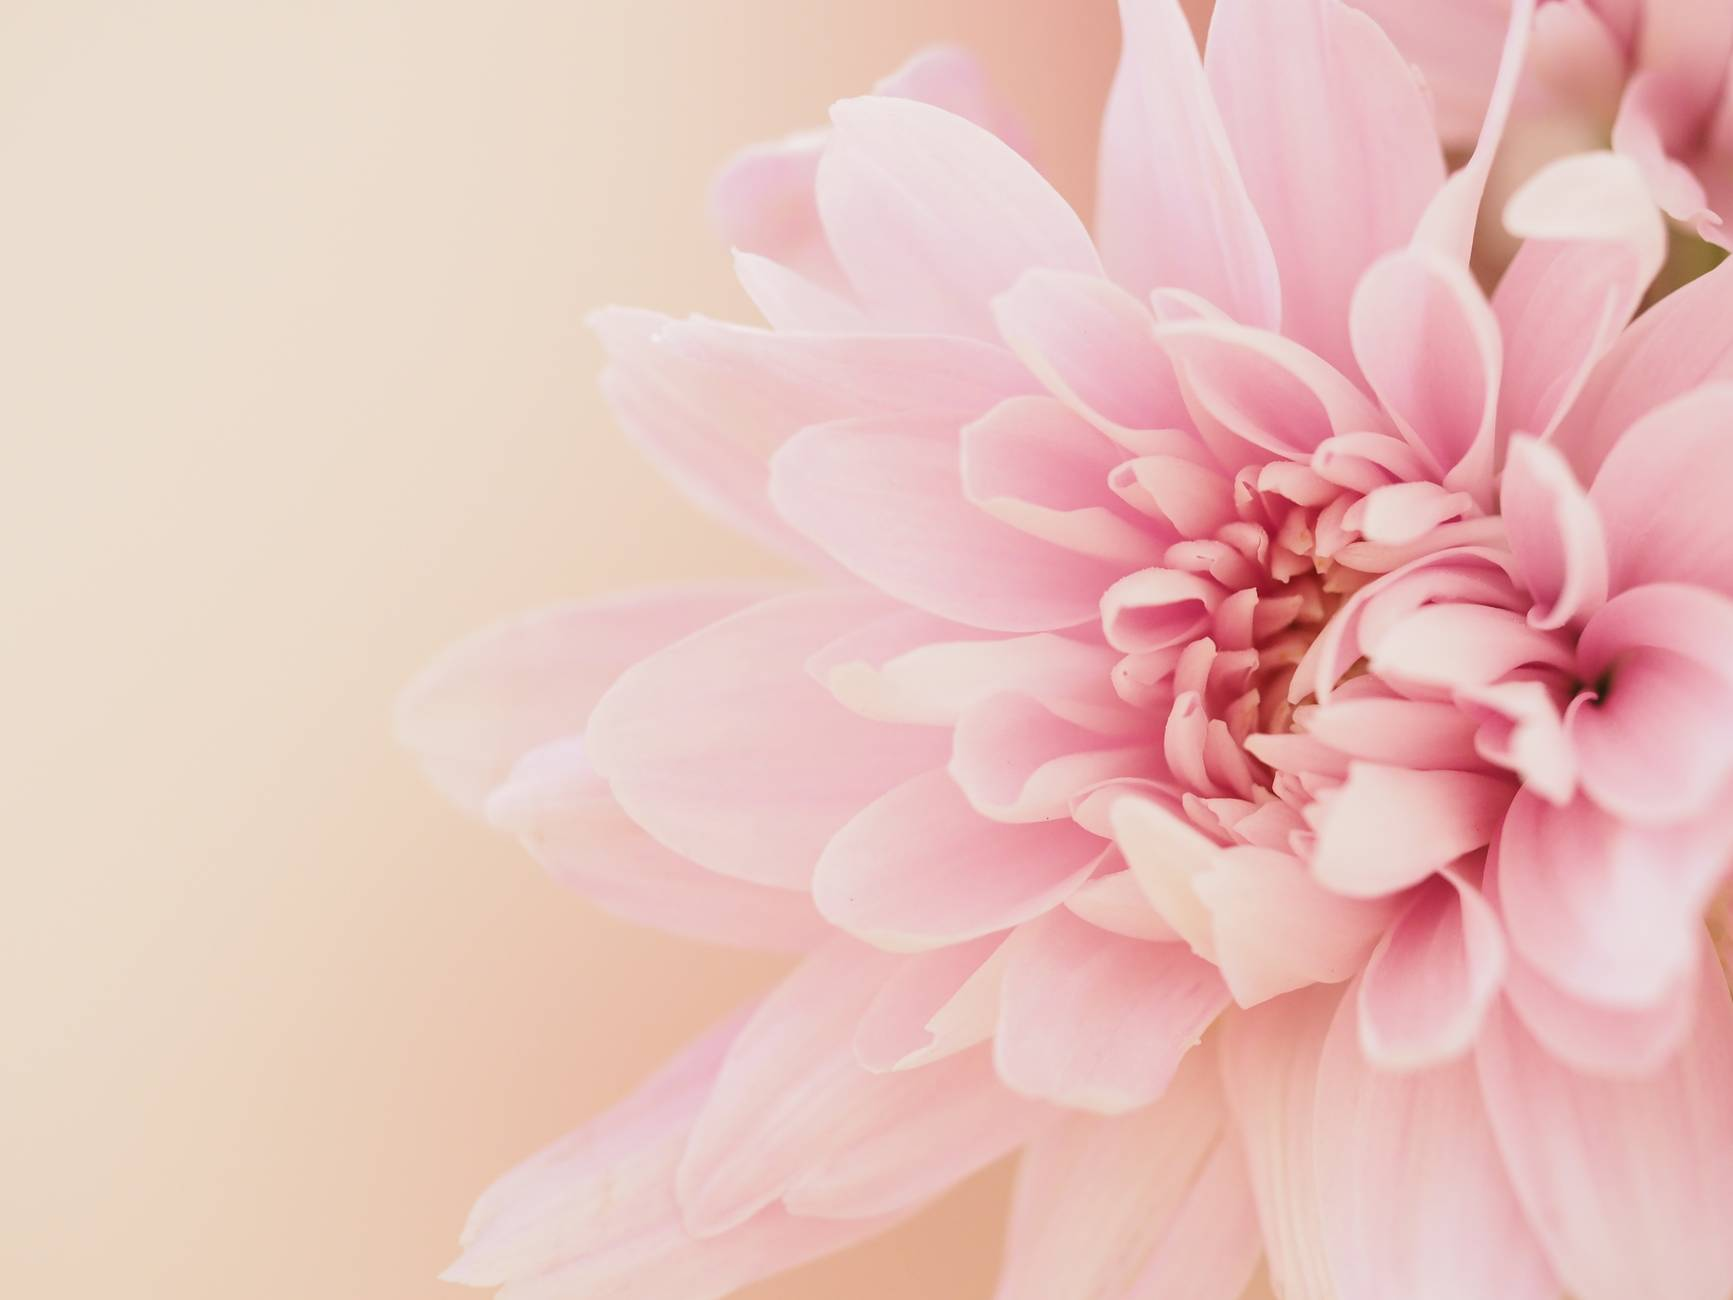 dahlia flower on light pink background